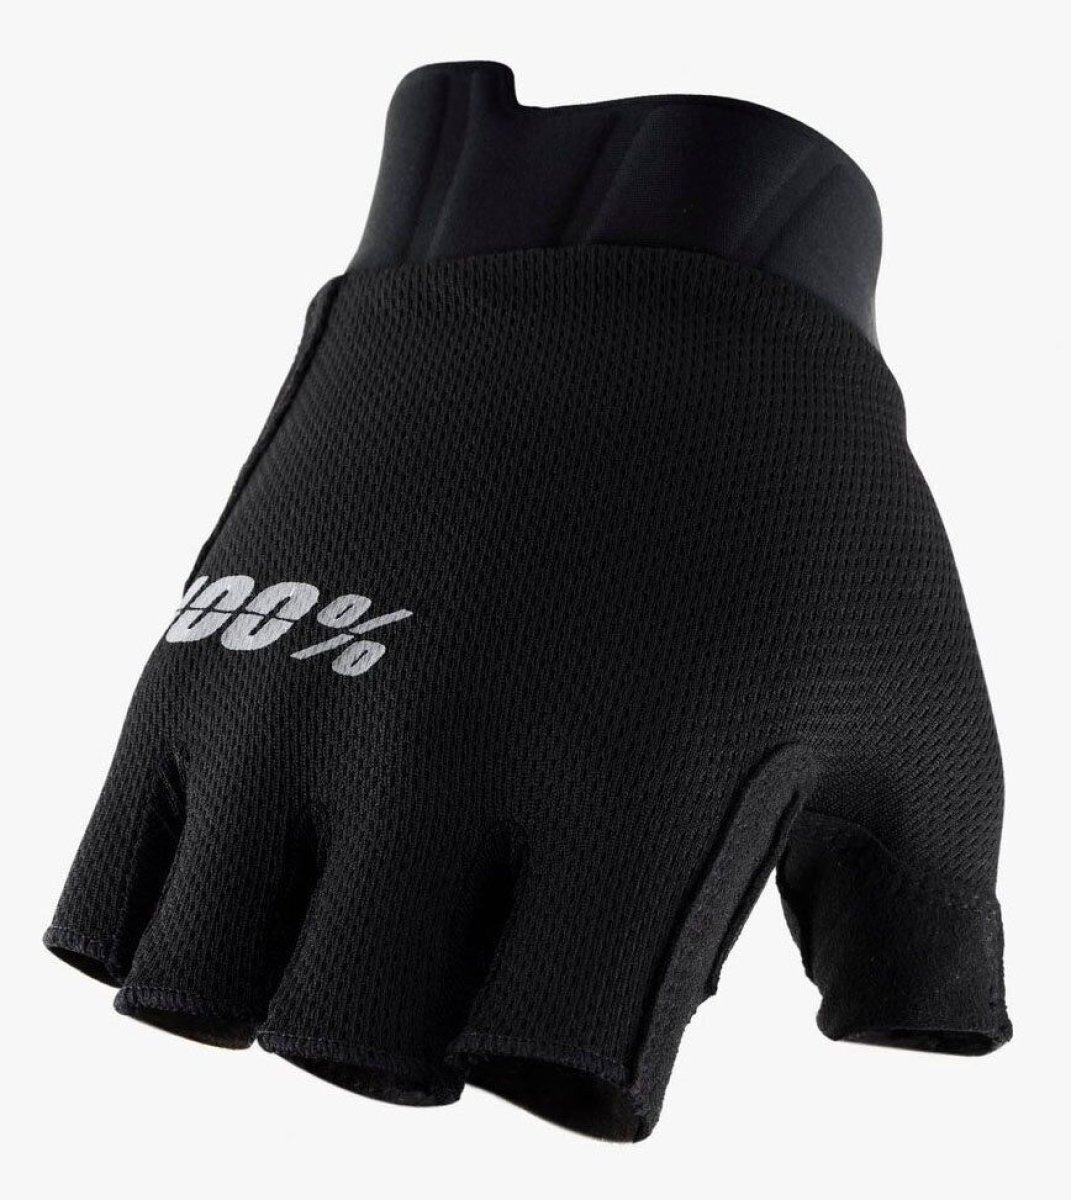 Перчатки Ride 100% EXCEEDA Gel Short Finger Glove 10021-100-13, 10021-100-12, 10021-100-10, 10021-100-11